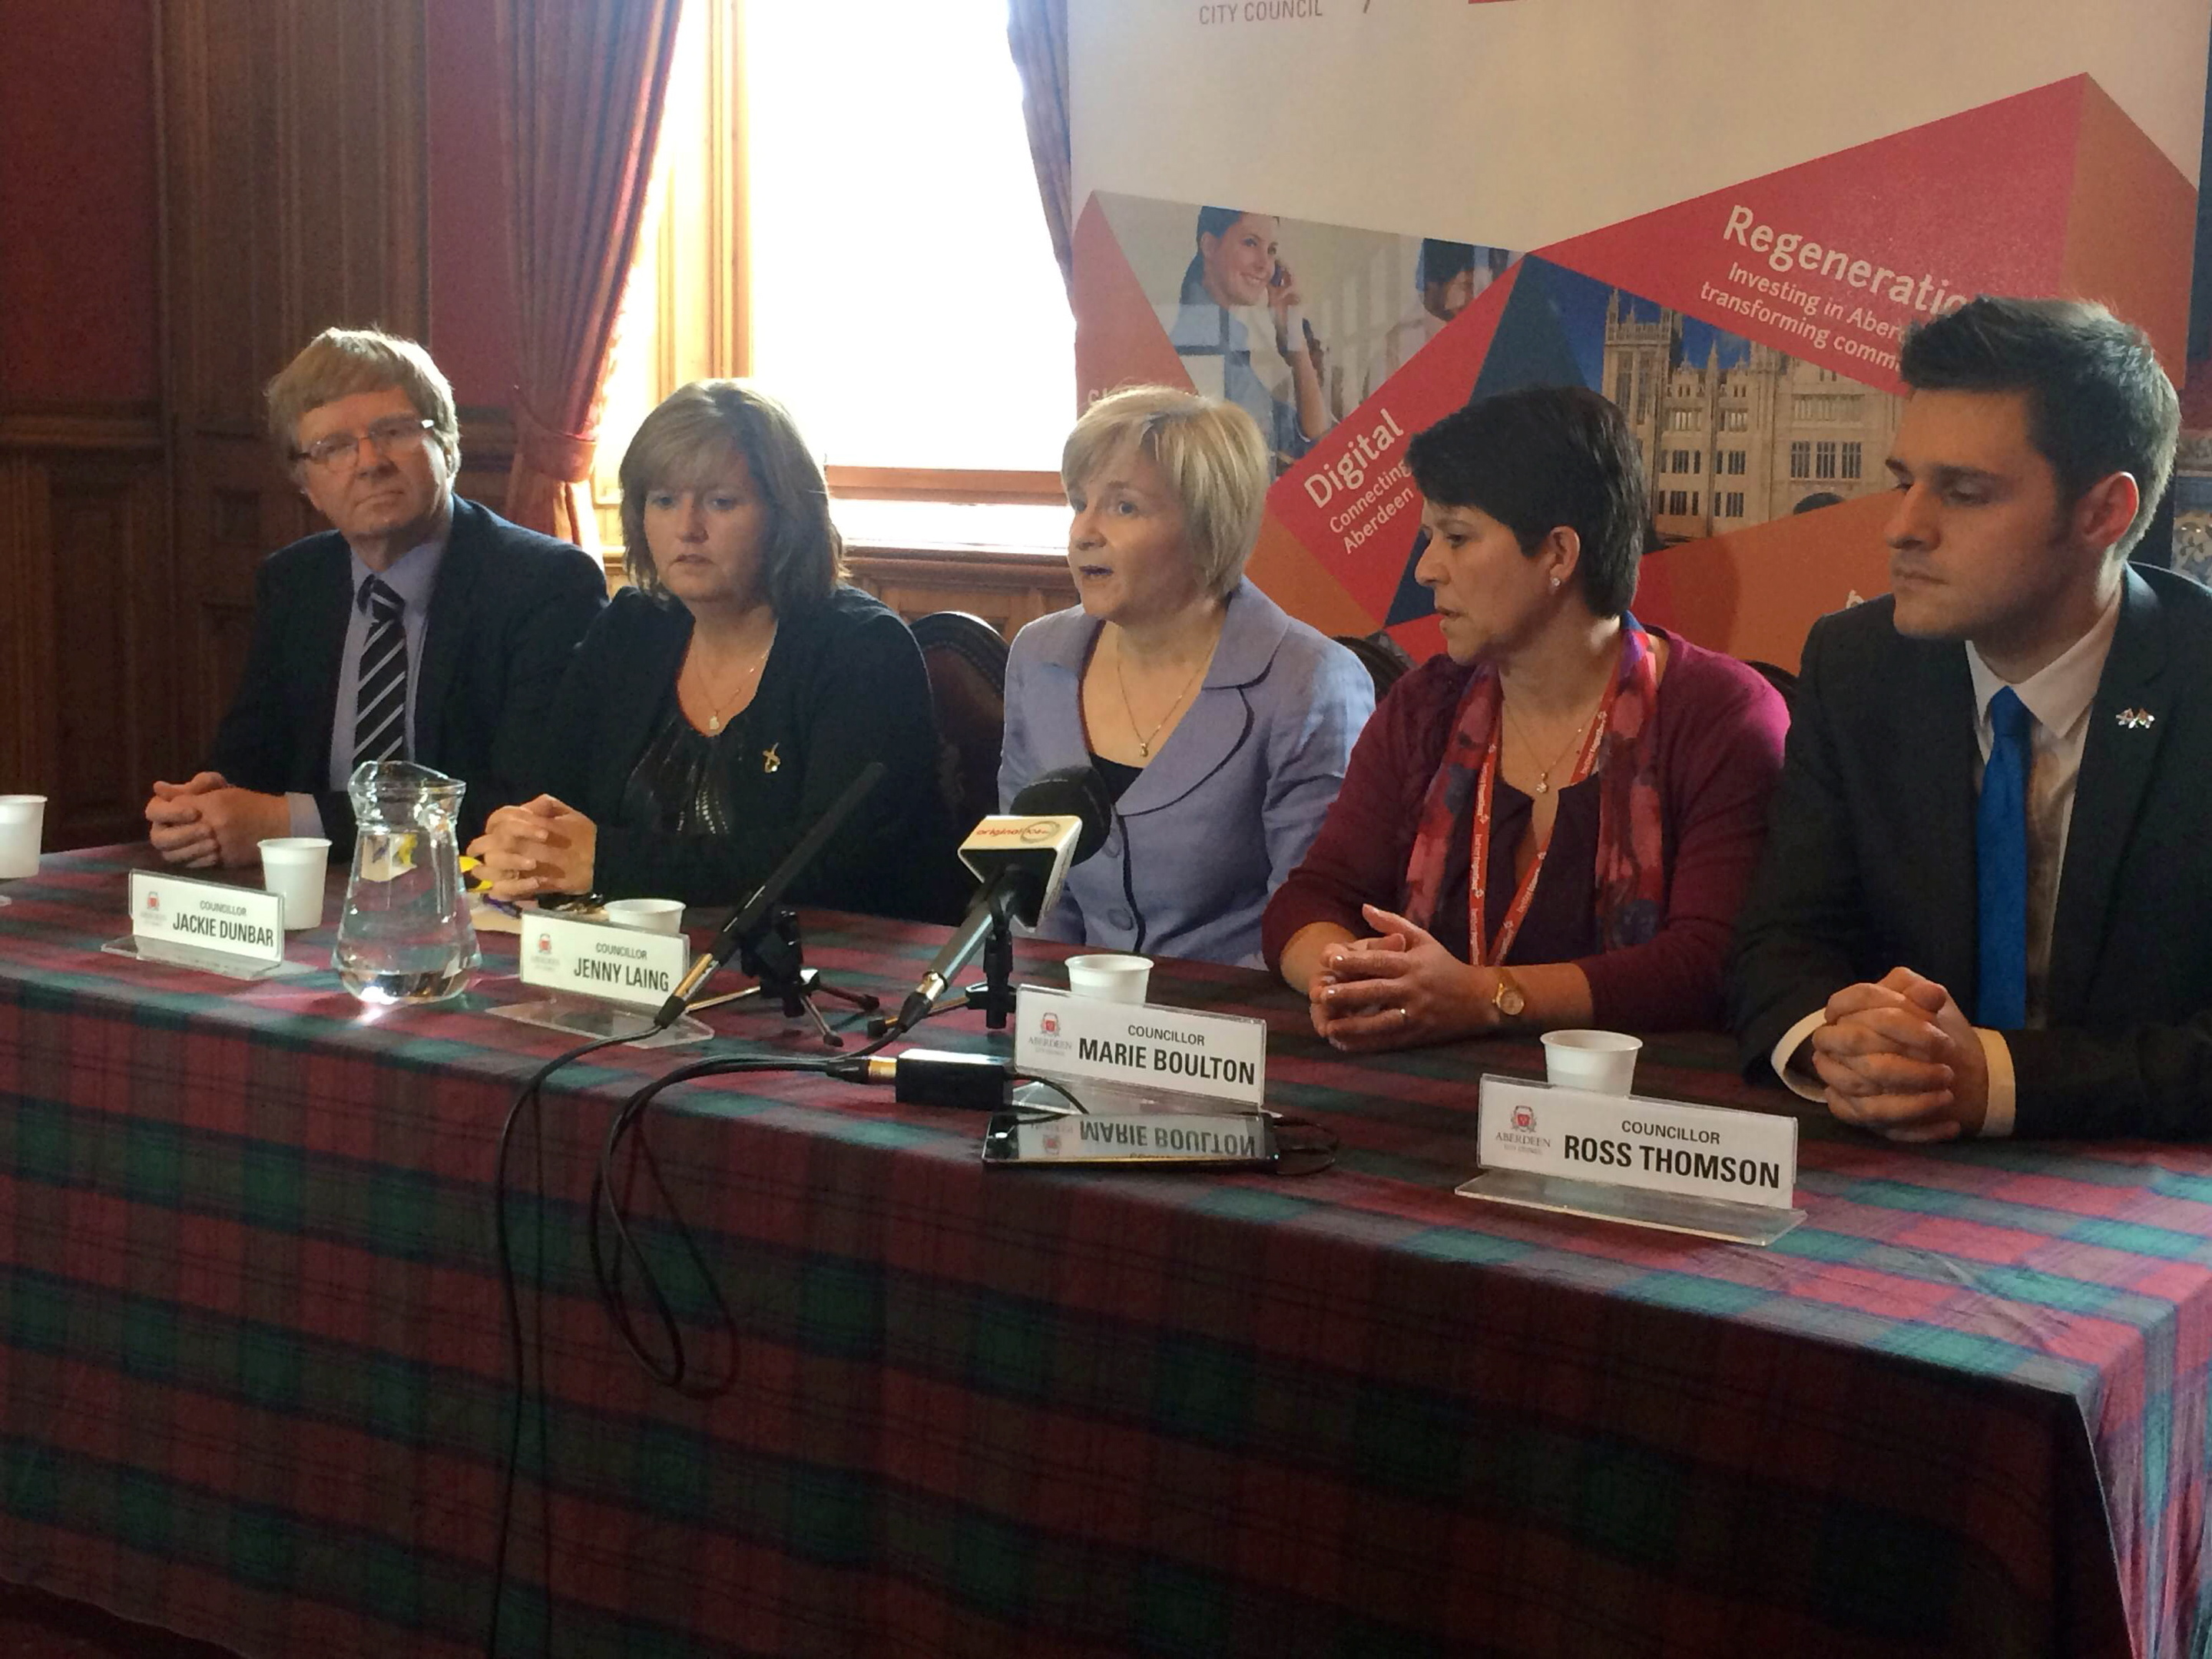 DECISION:  Councillors Ian Yuill, Jackie Dunbar, Jenny Laing, Marie Boulton and Ross Thomson at the press conference following the approval of the Aberdeen city Masterplan.